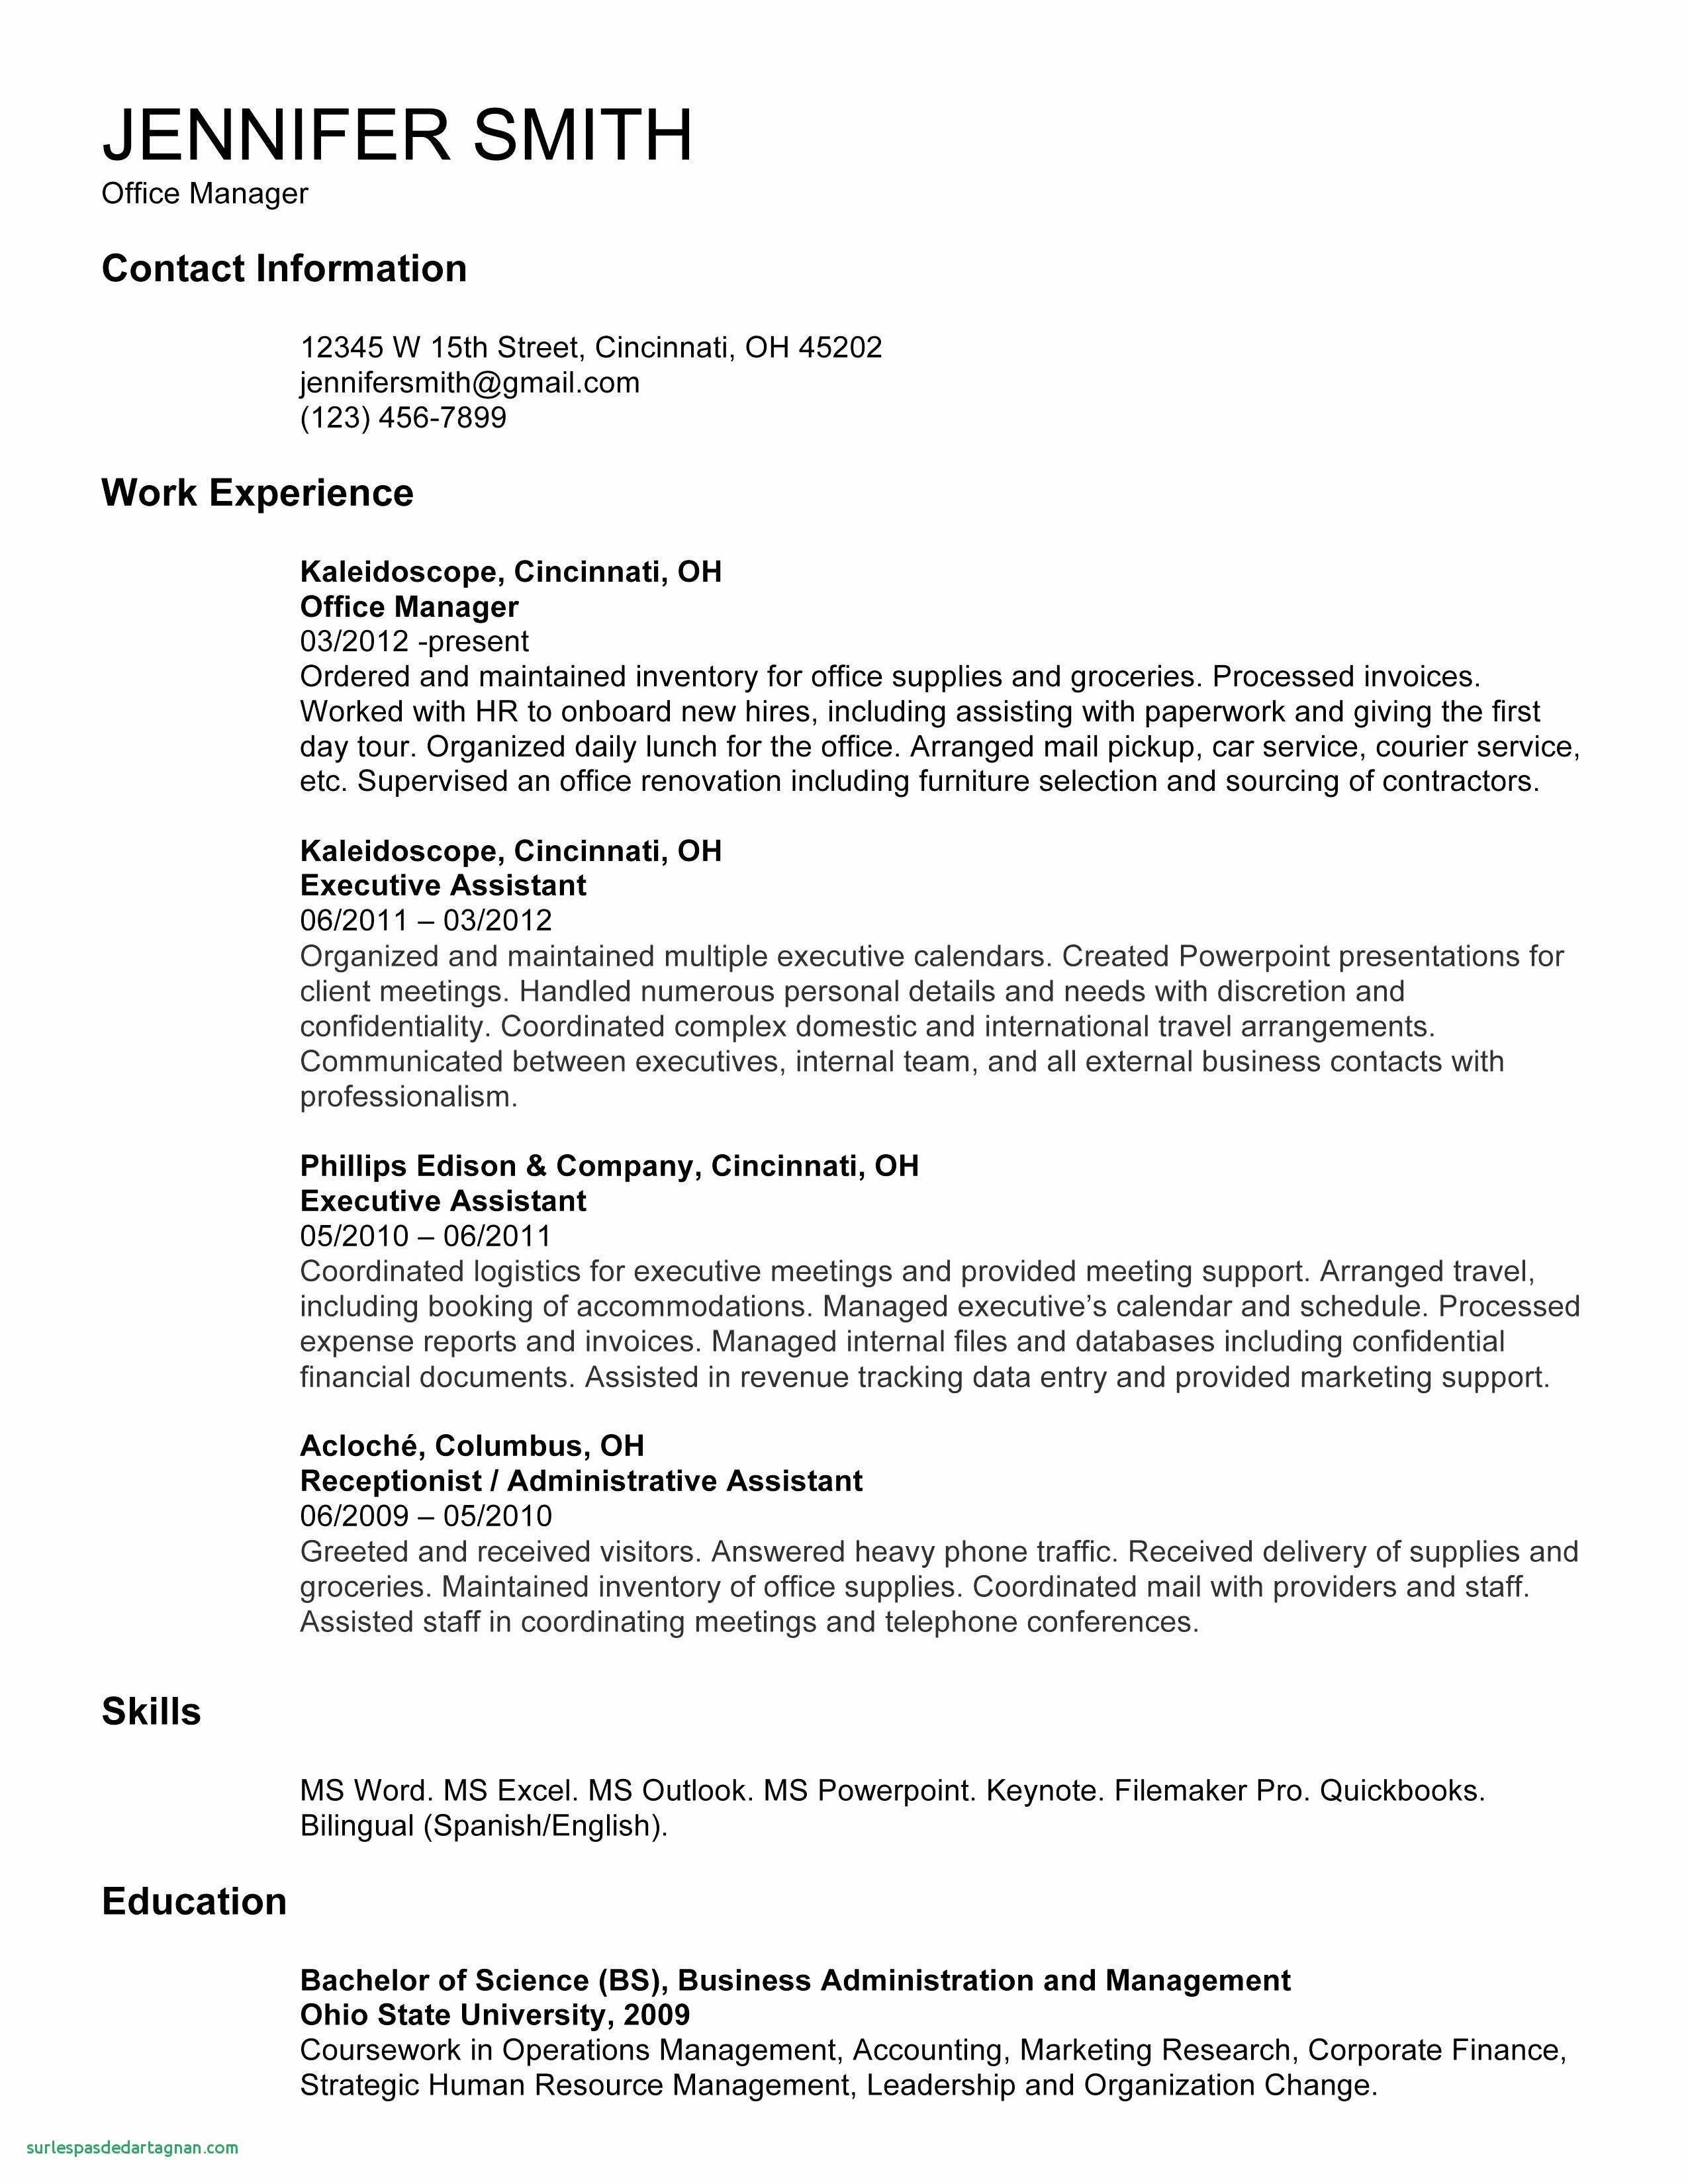 Human Resources Resume Template - Resume Template Download Free Unique ¢Ë†Å¡ Resume Template Download